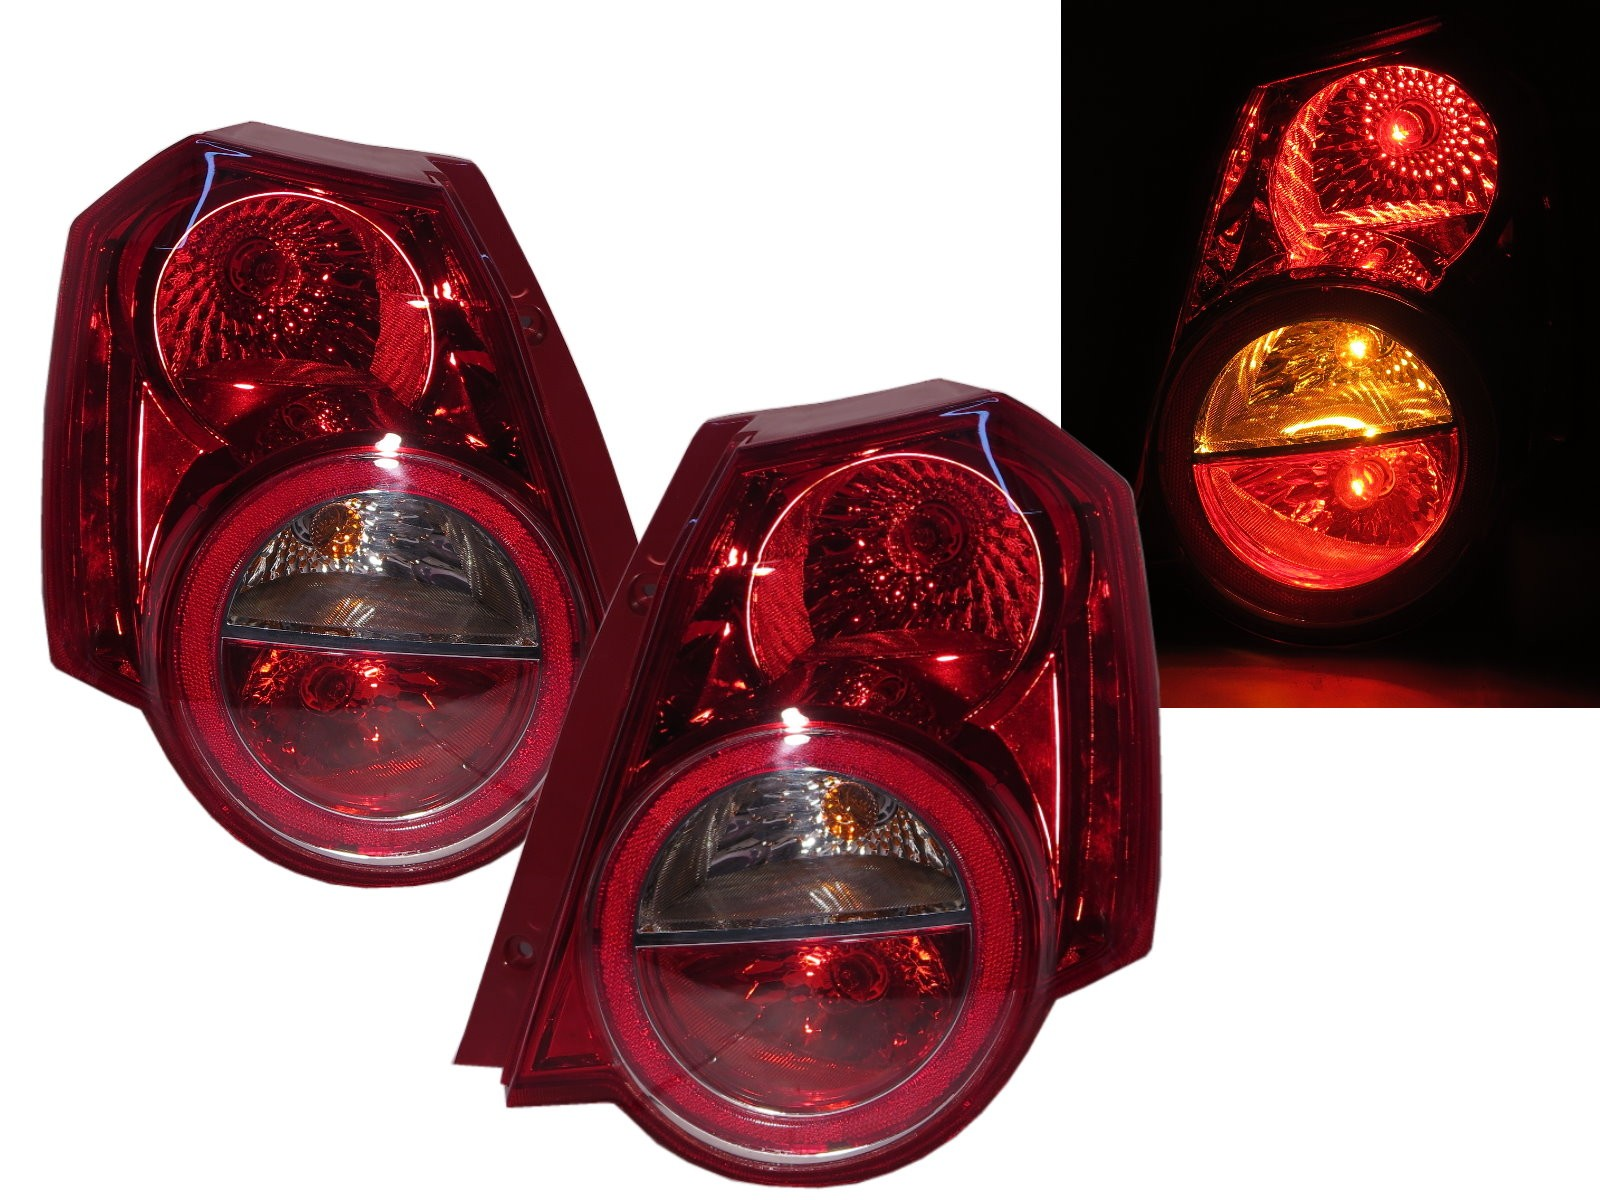 CrazyTheGod Aveo T250 First generation 2009-2011 FACELIFT Hatchback 3D/5D Clear Tail Rear Light Red for CHEVROLET CHEVY